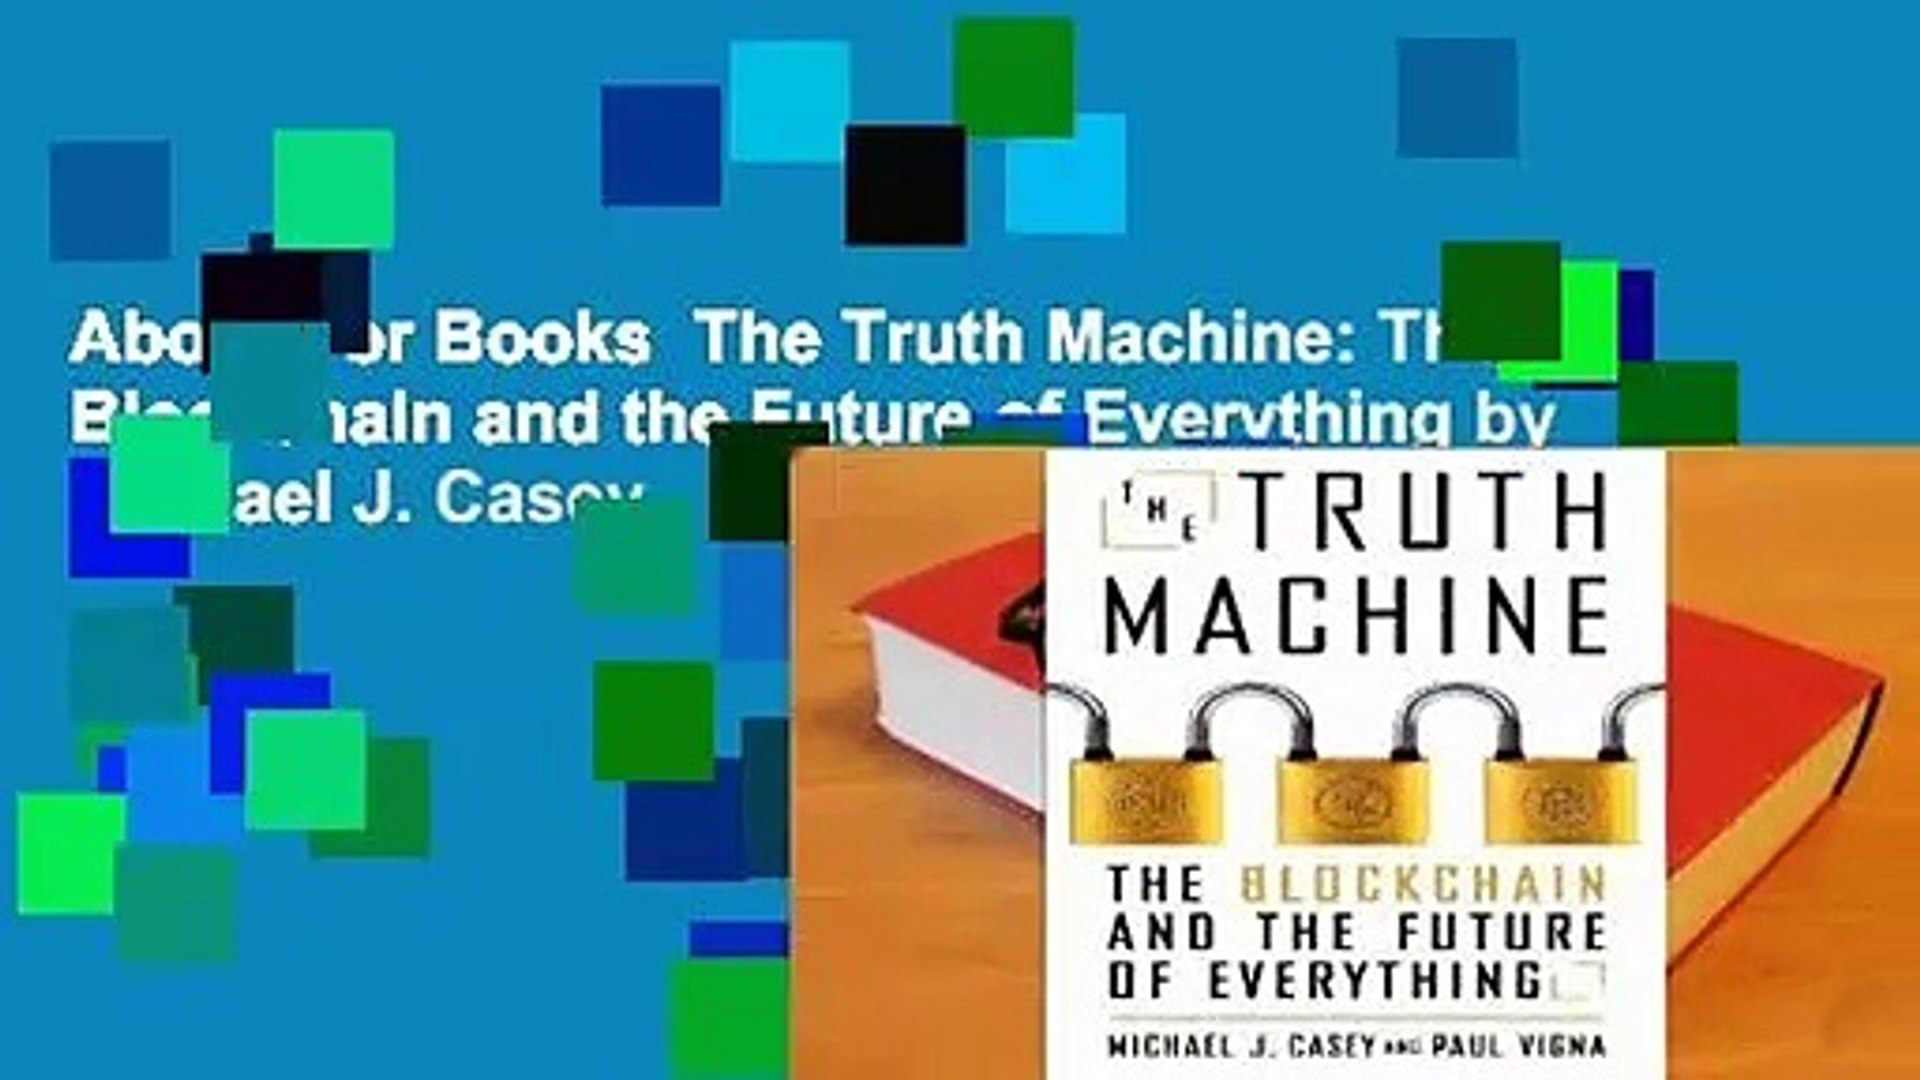 About For Books  The Truth Machine: The Blockchain and the Future of Everything by Michael J. Casey